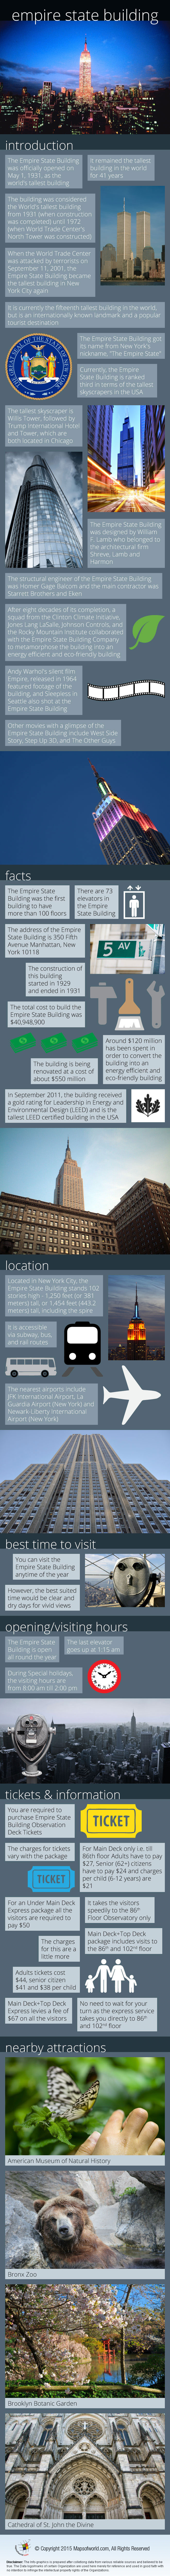 Empire State Building Infographic